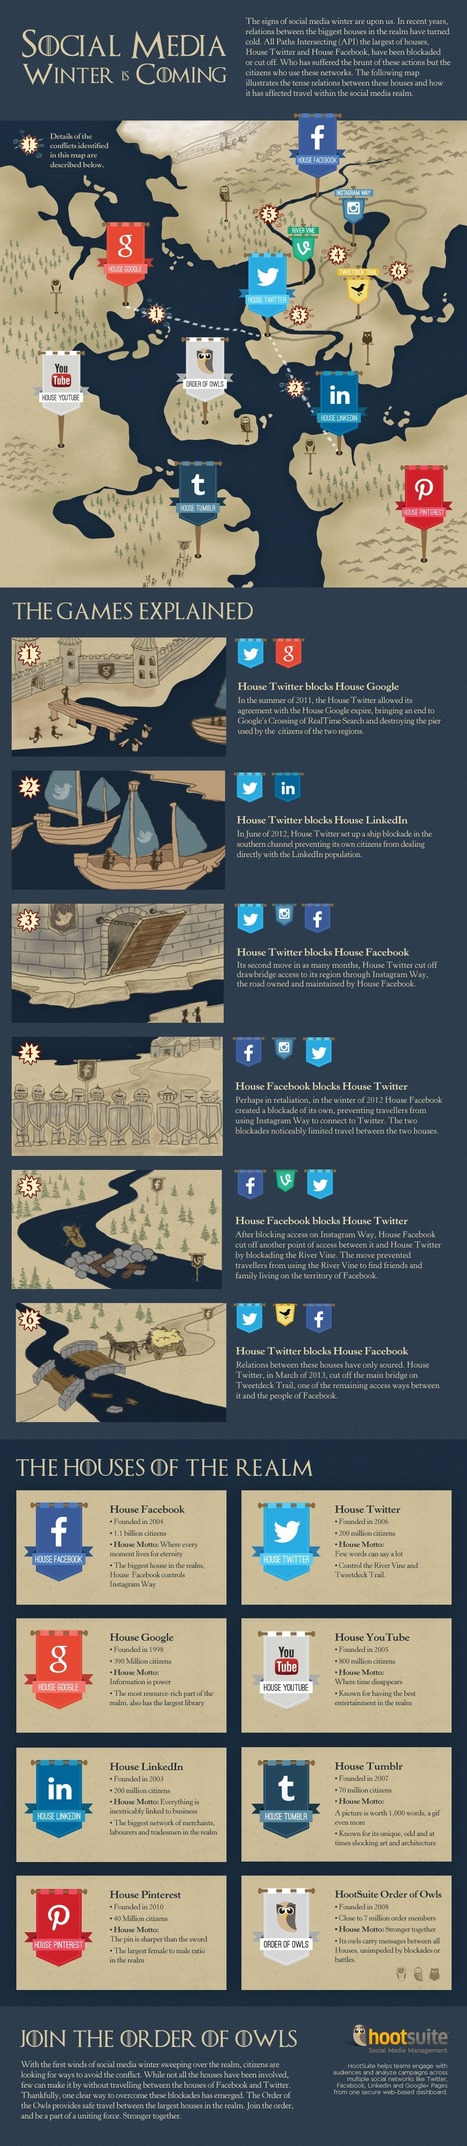 Social Media Wars Told in 'Game of Thrones' Style [INFOGRAPHIC] | Cross-Platform Storytelling | Scoop.it